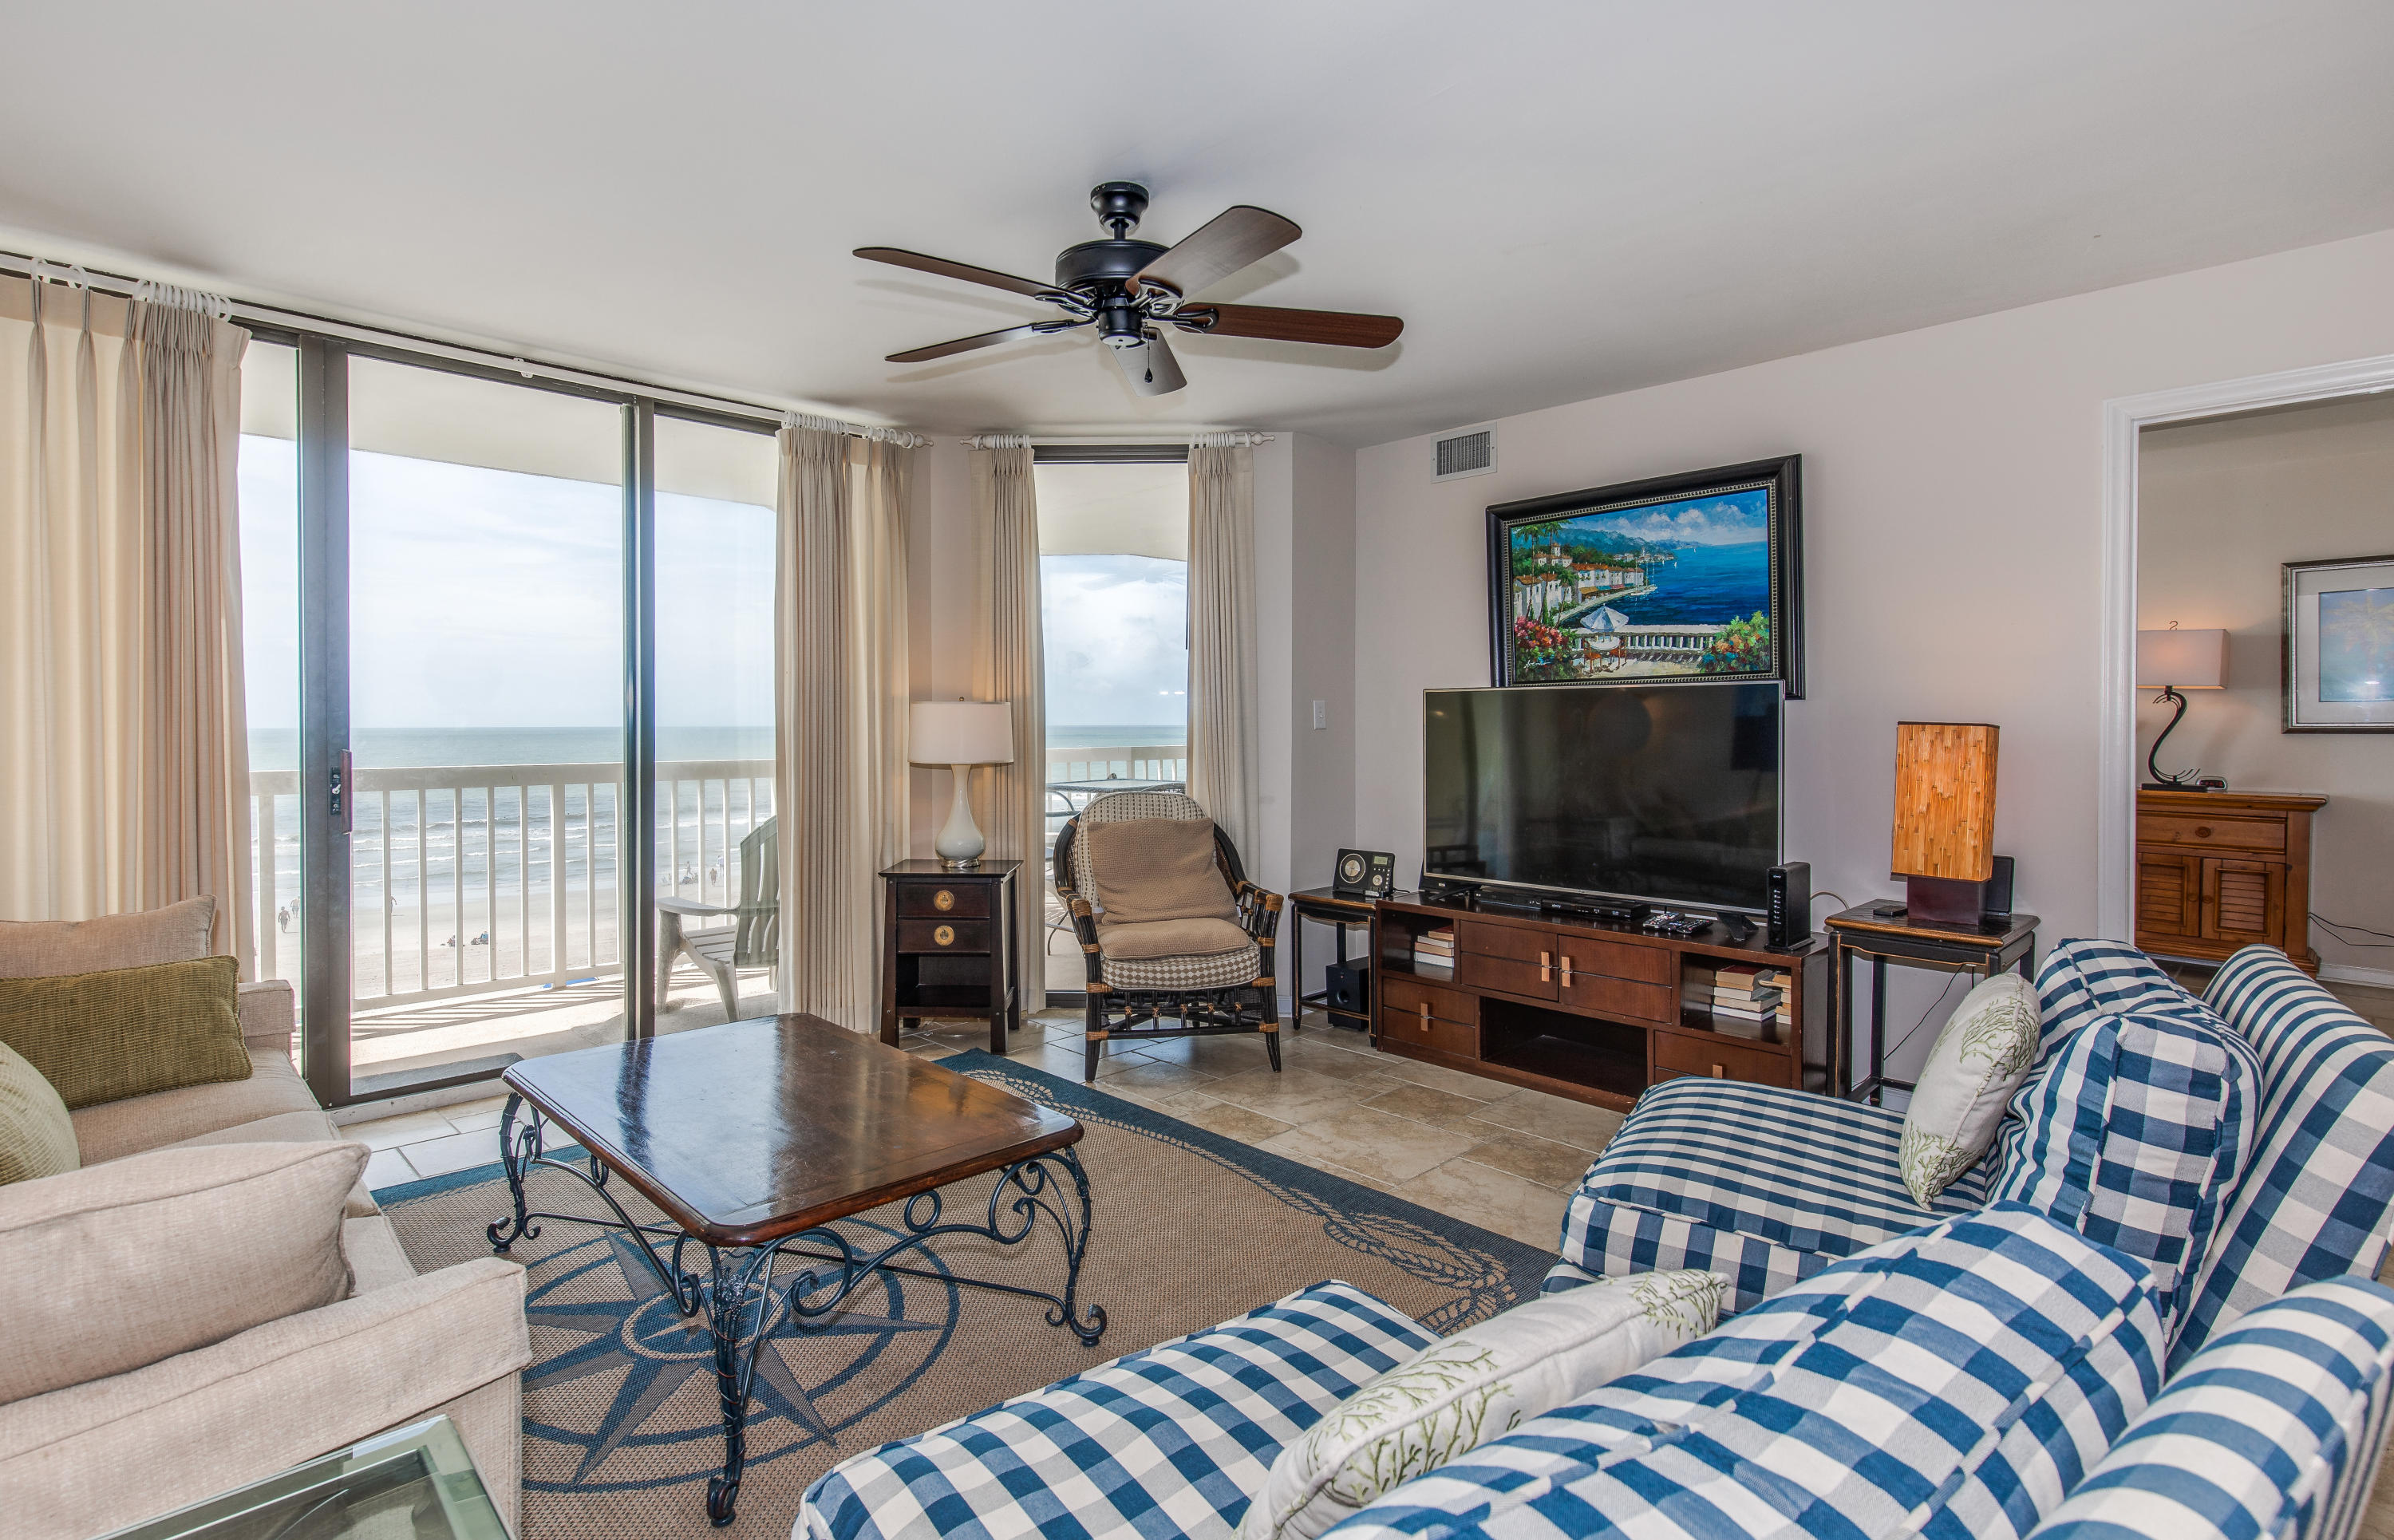 Charleston Oceanfront Villas Homes For Sale - 201 Arctic, Folly Beach, SC - 3